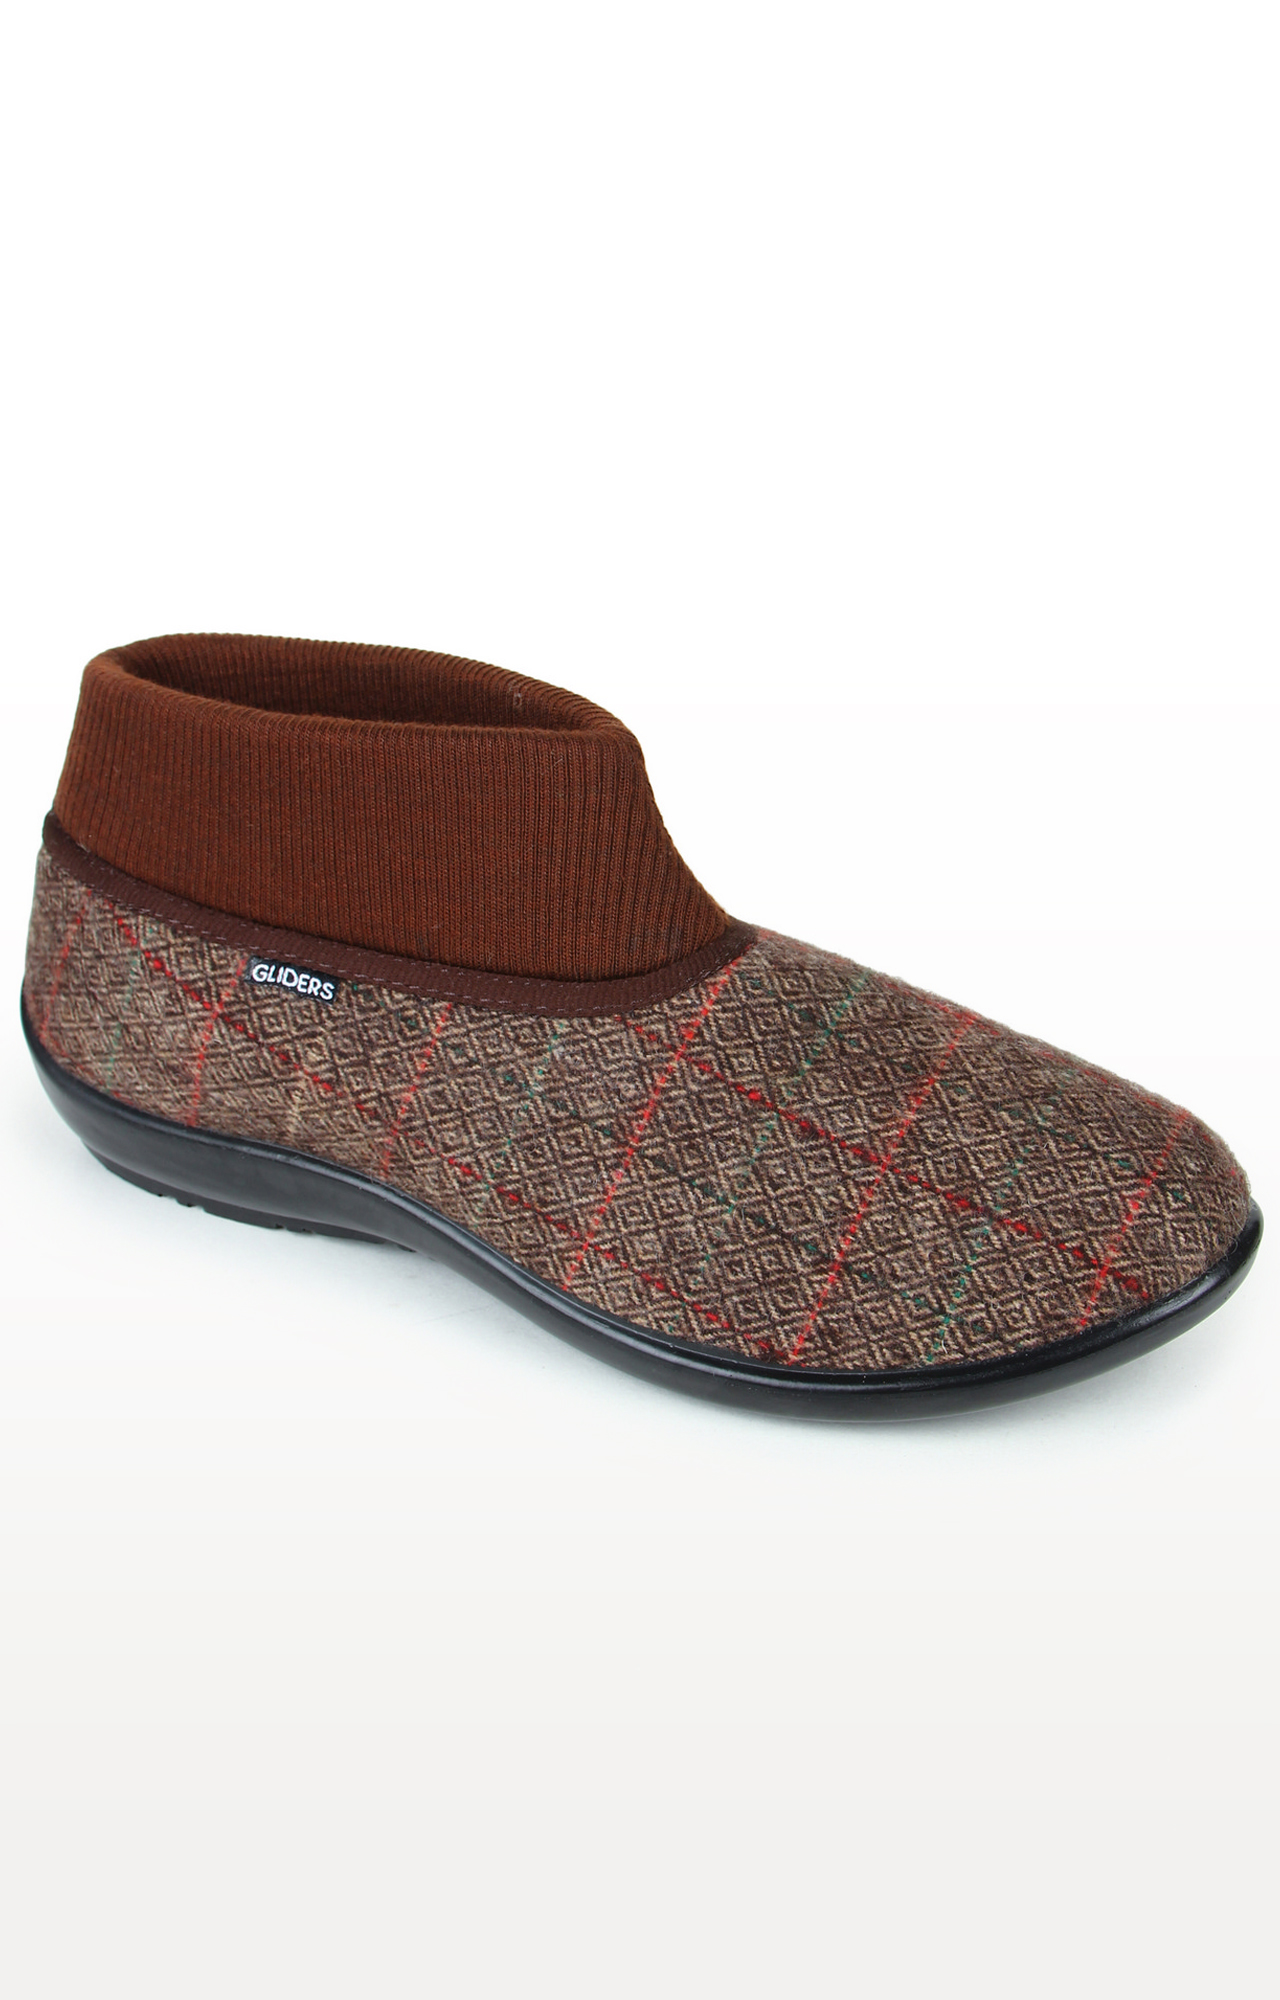 Liberty   Gliders by Liberty Brown Casual Slip-ons